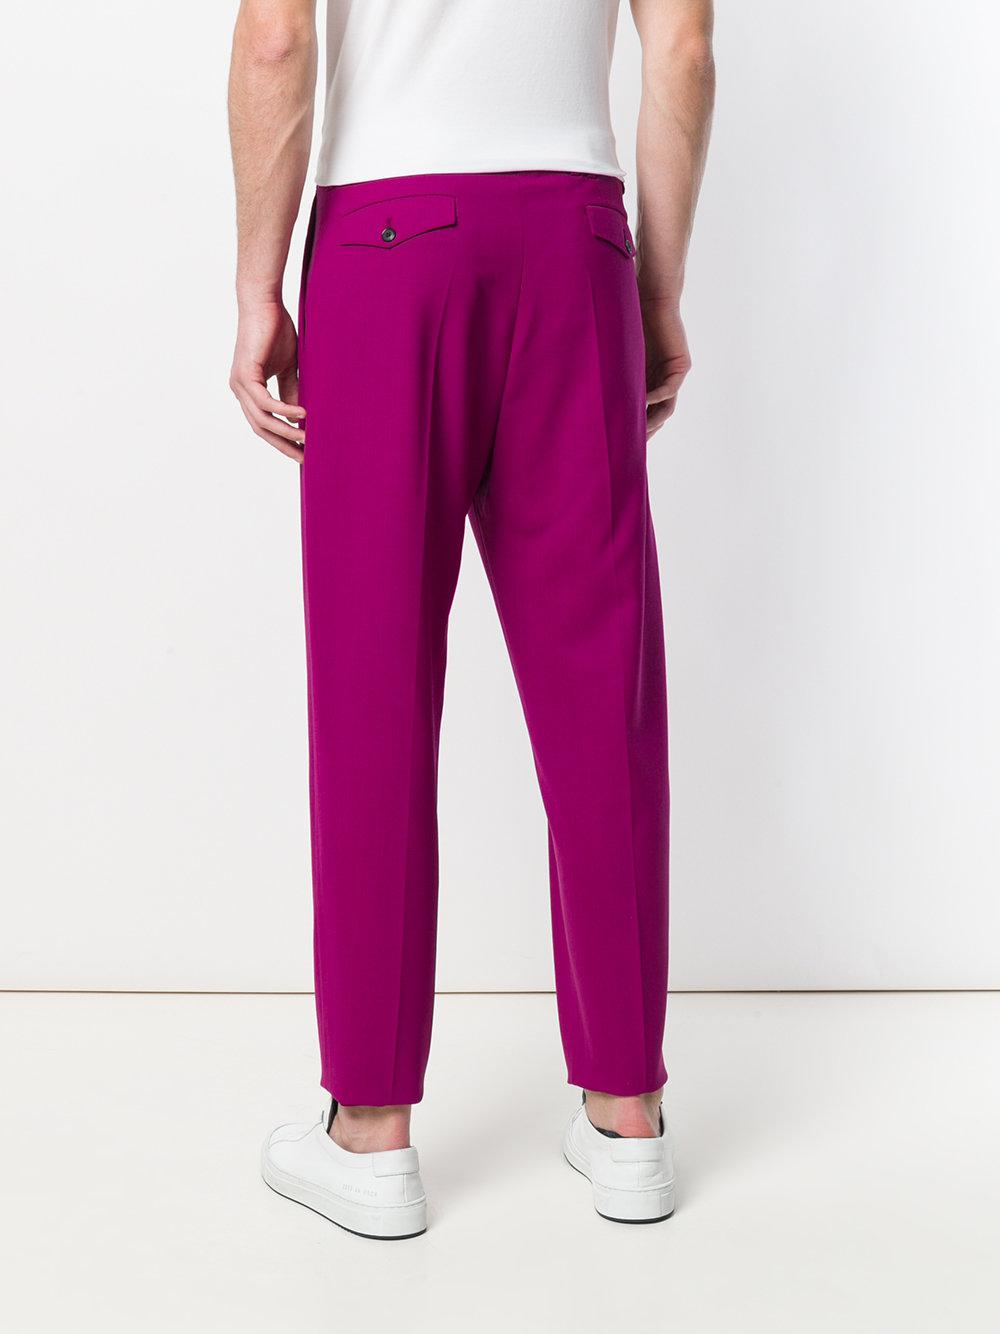 Paul Smith Wool Pleated Formal Trousers for Men